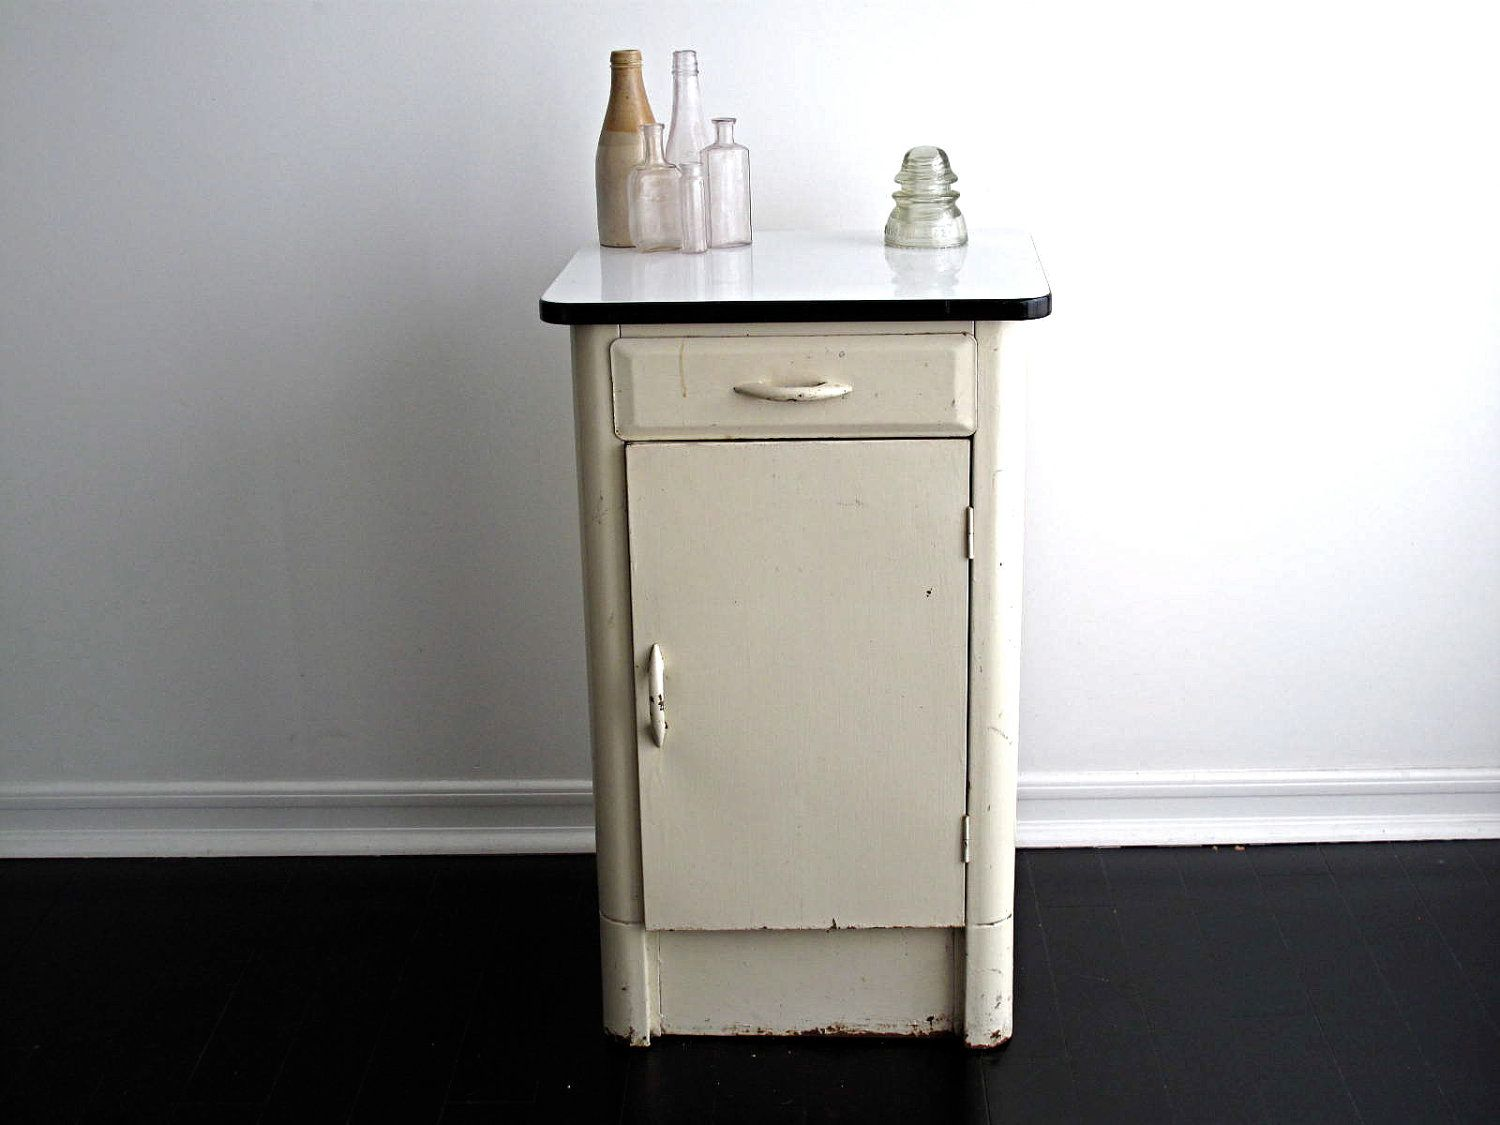 Vintage White Metal Cabinet with an Enamel Top via Etsy